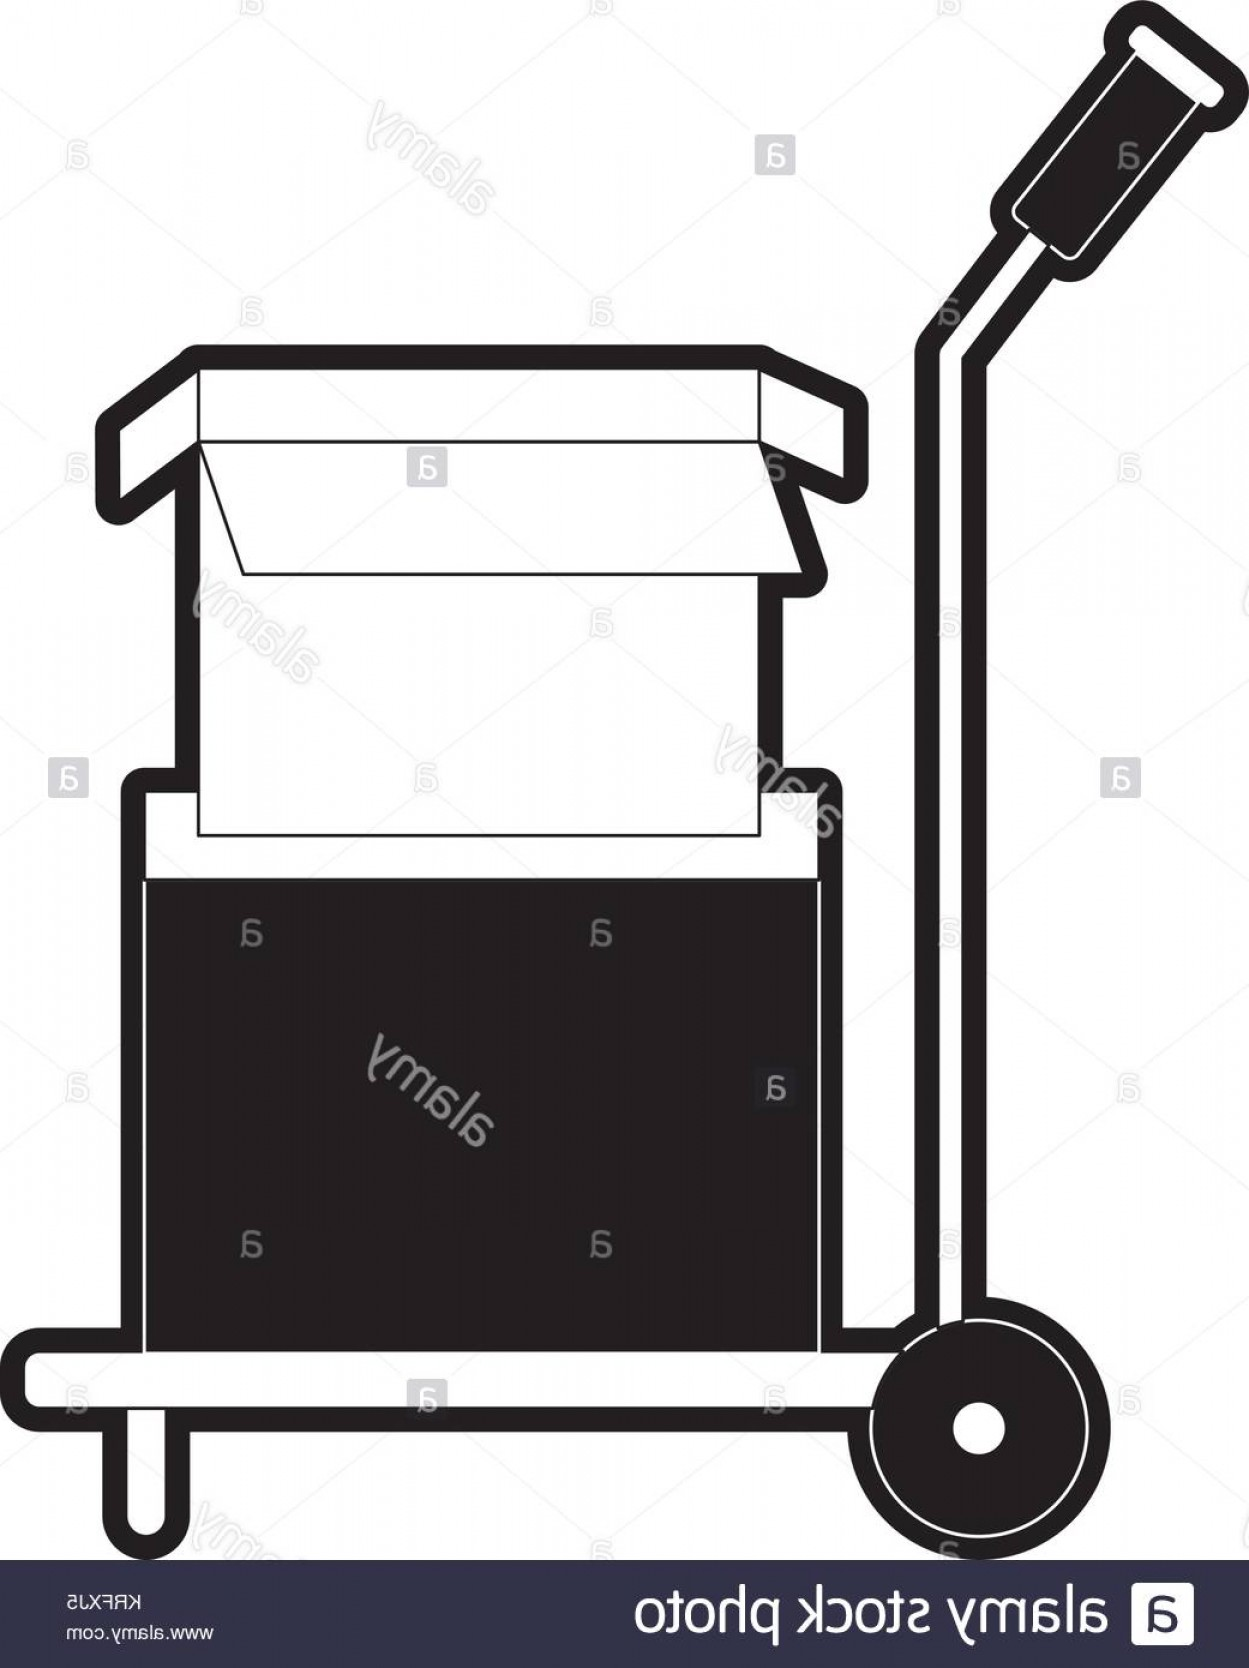 Hand Cart Silhouette Vectors: Stock Image Hand Truck With Cardboard Boxes Stacked And One Opened In Black Silhouette